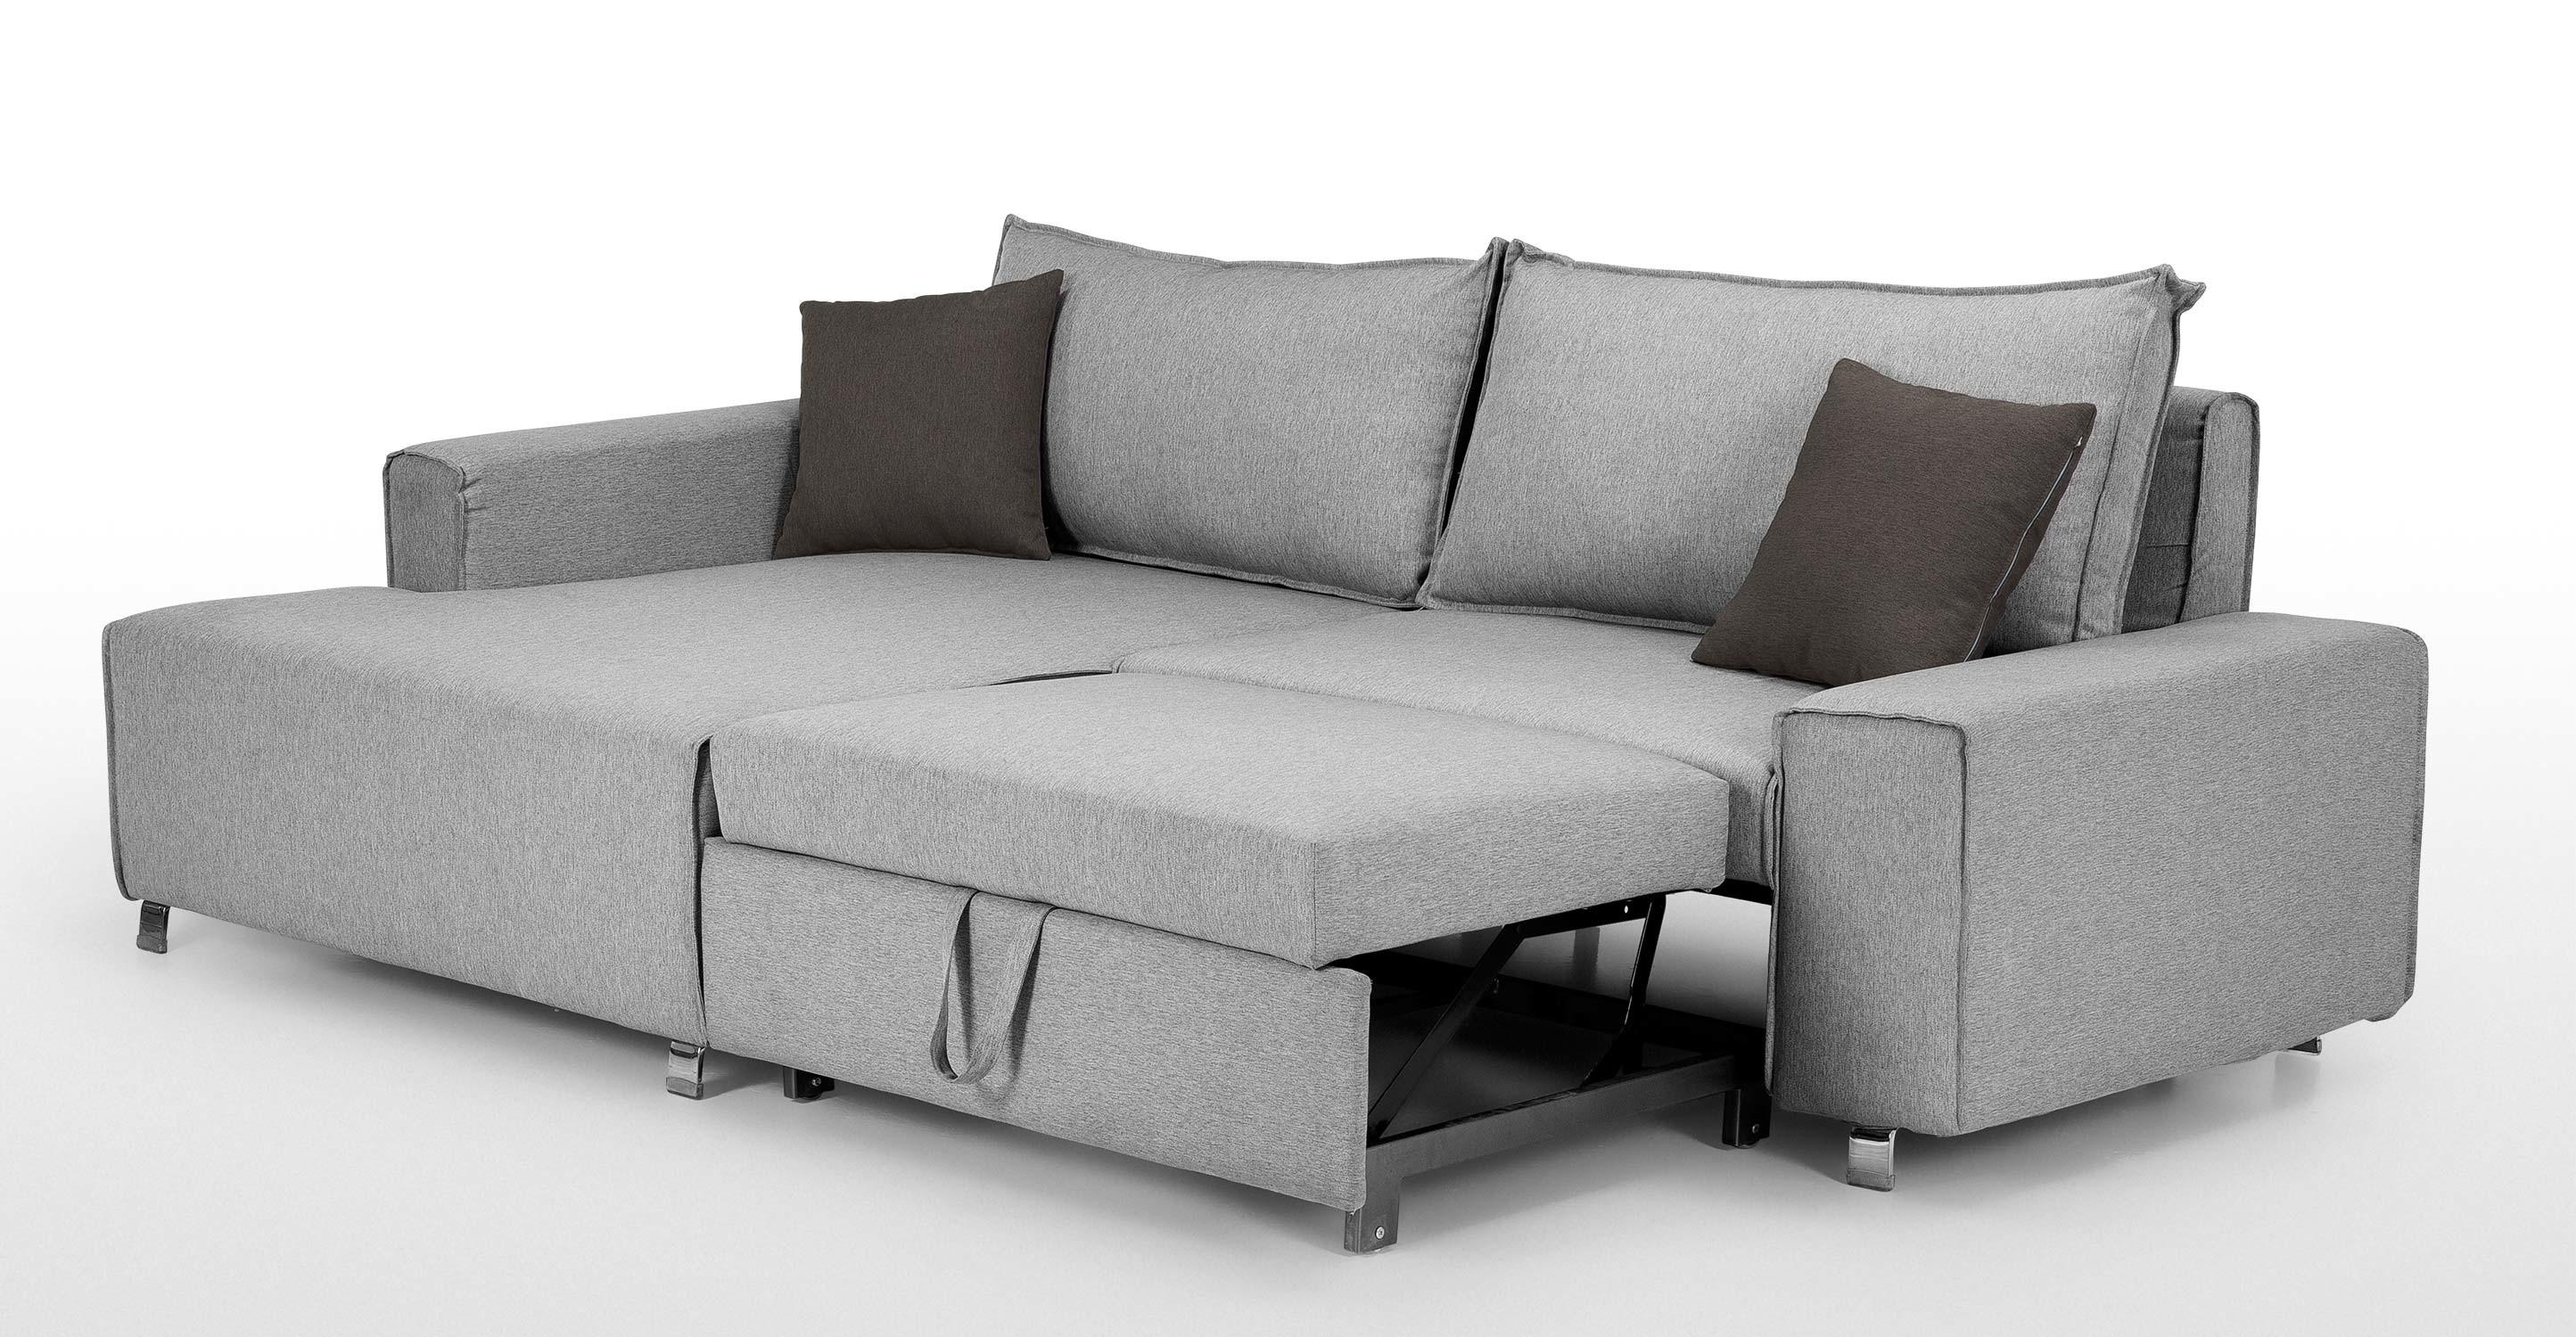 Elegant Sofa Bed Bar Shield 70 For Full Size Sofa Beds Sale With Regarding Sofa Beds Bar Shield (Image 4 of 20)